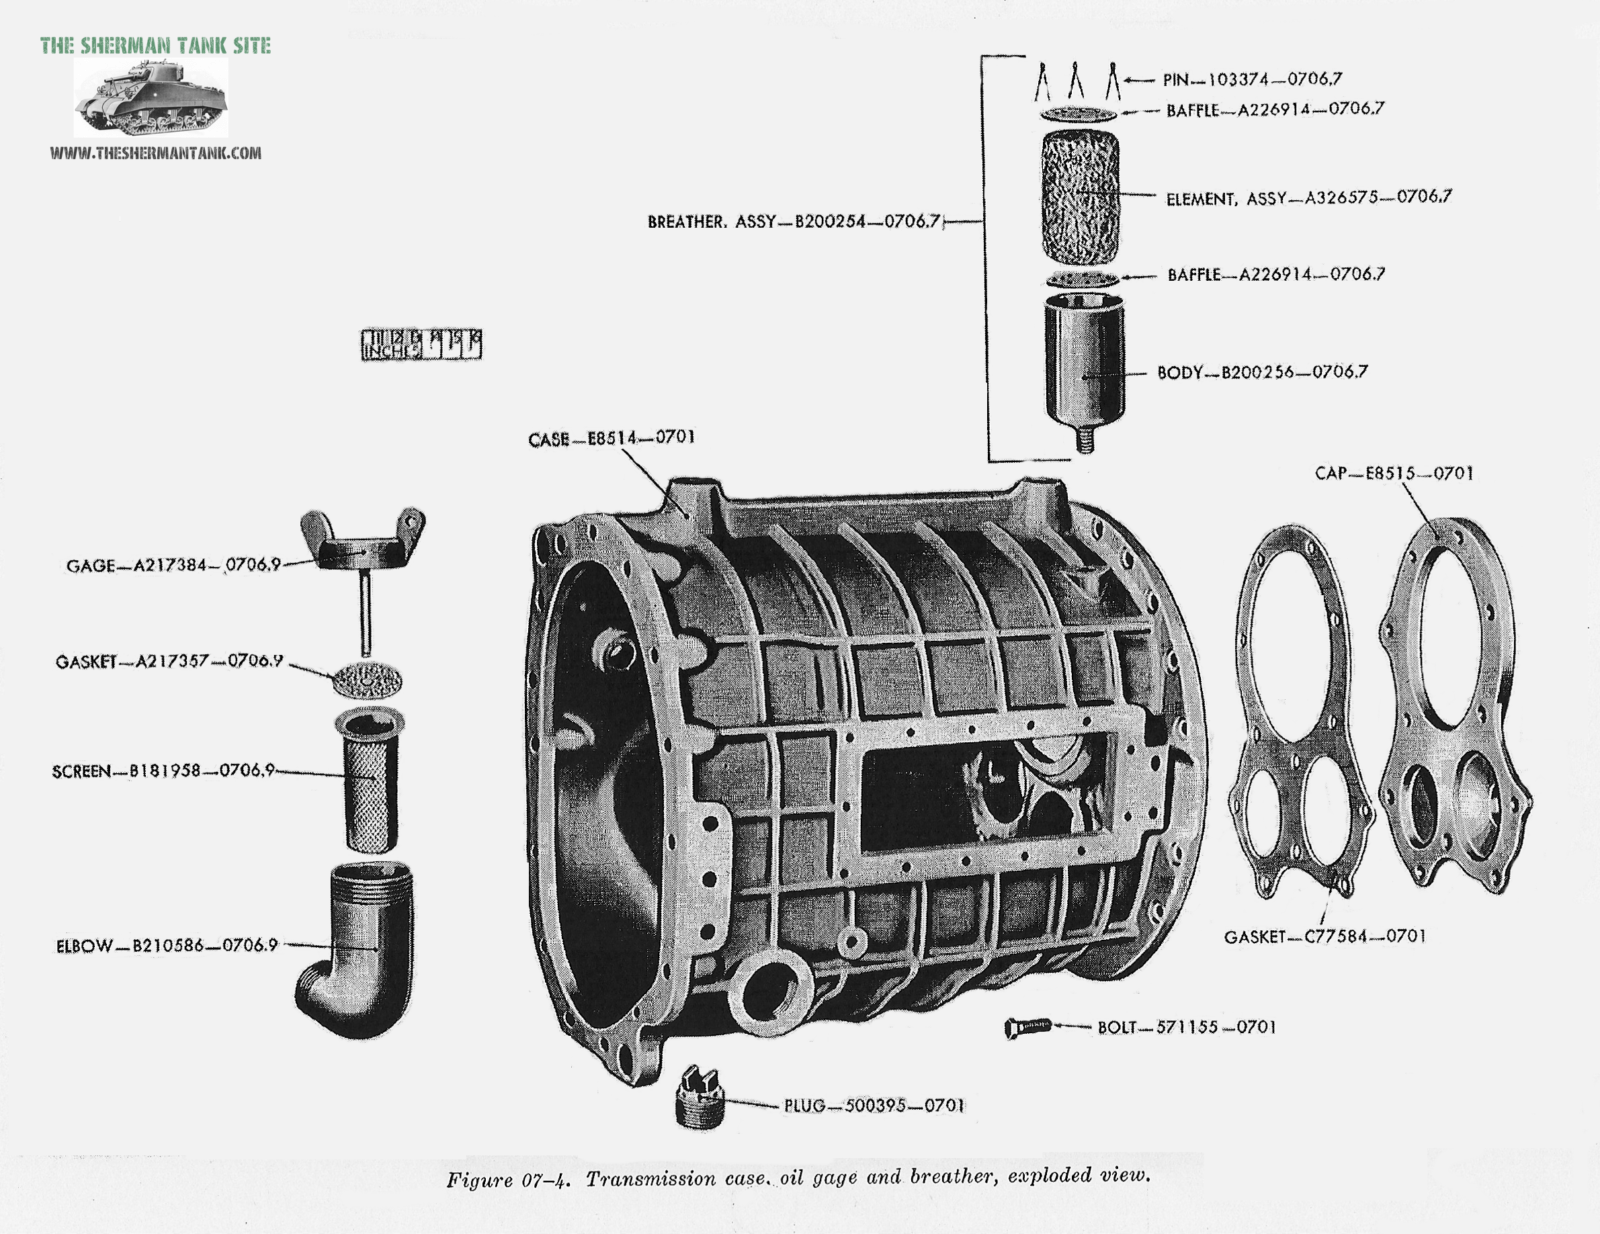 The Sherman Transmission: A pretty robust, and advanced